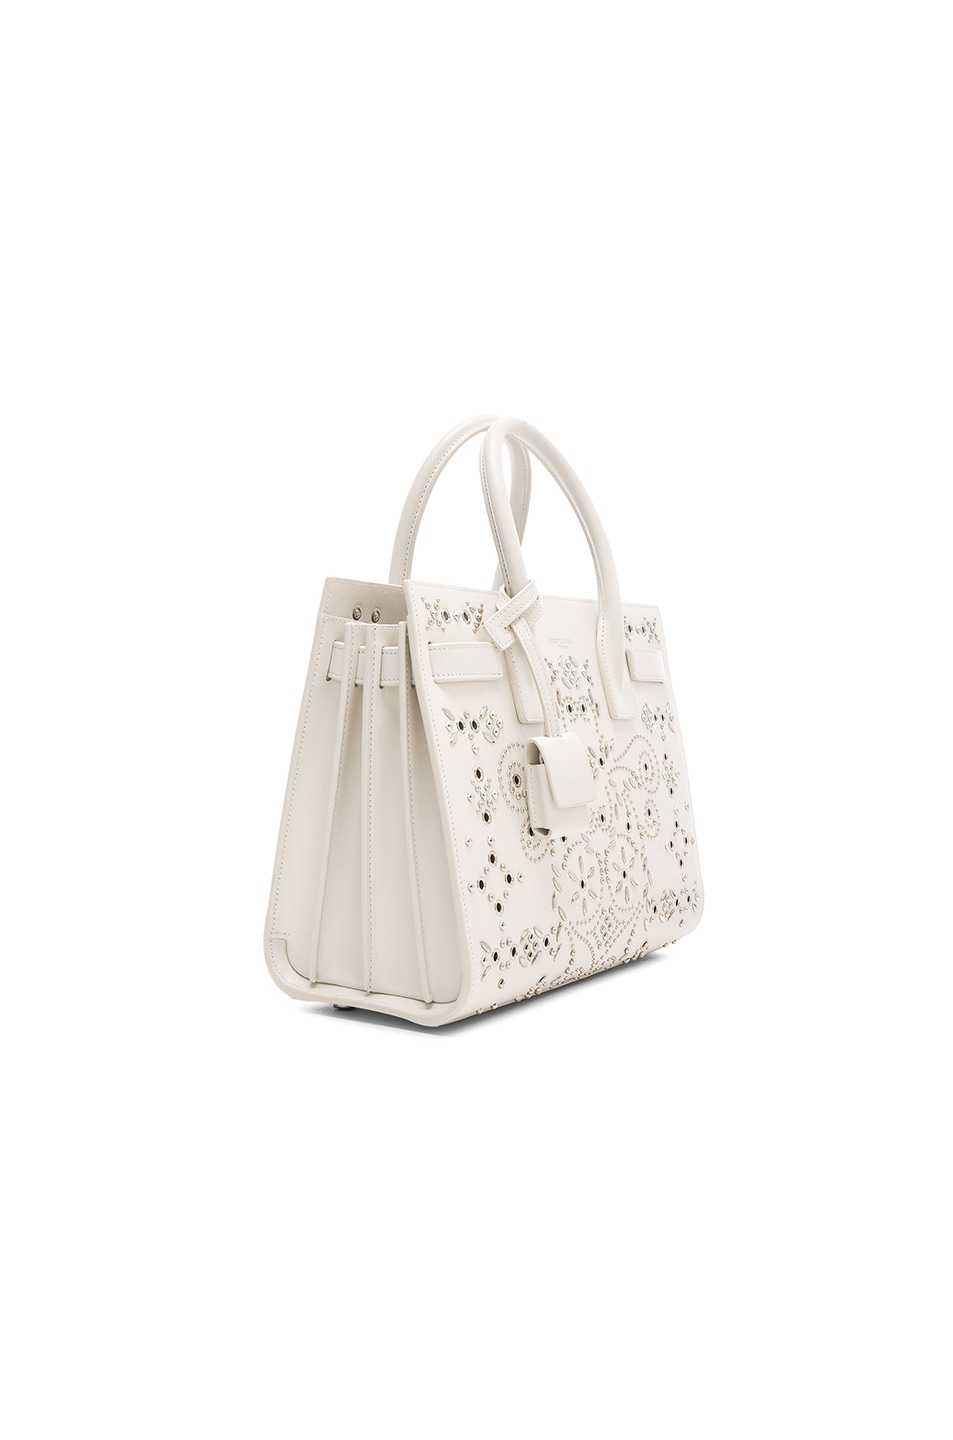 Saint Laurent Baby Bandana Embroidery Sac De Jour Bag in White | FWRD